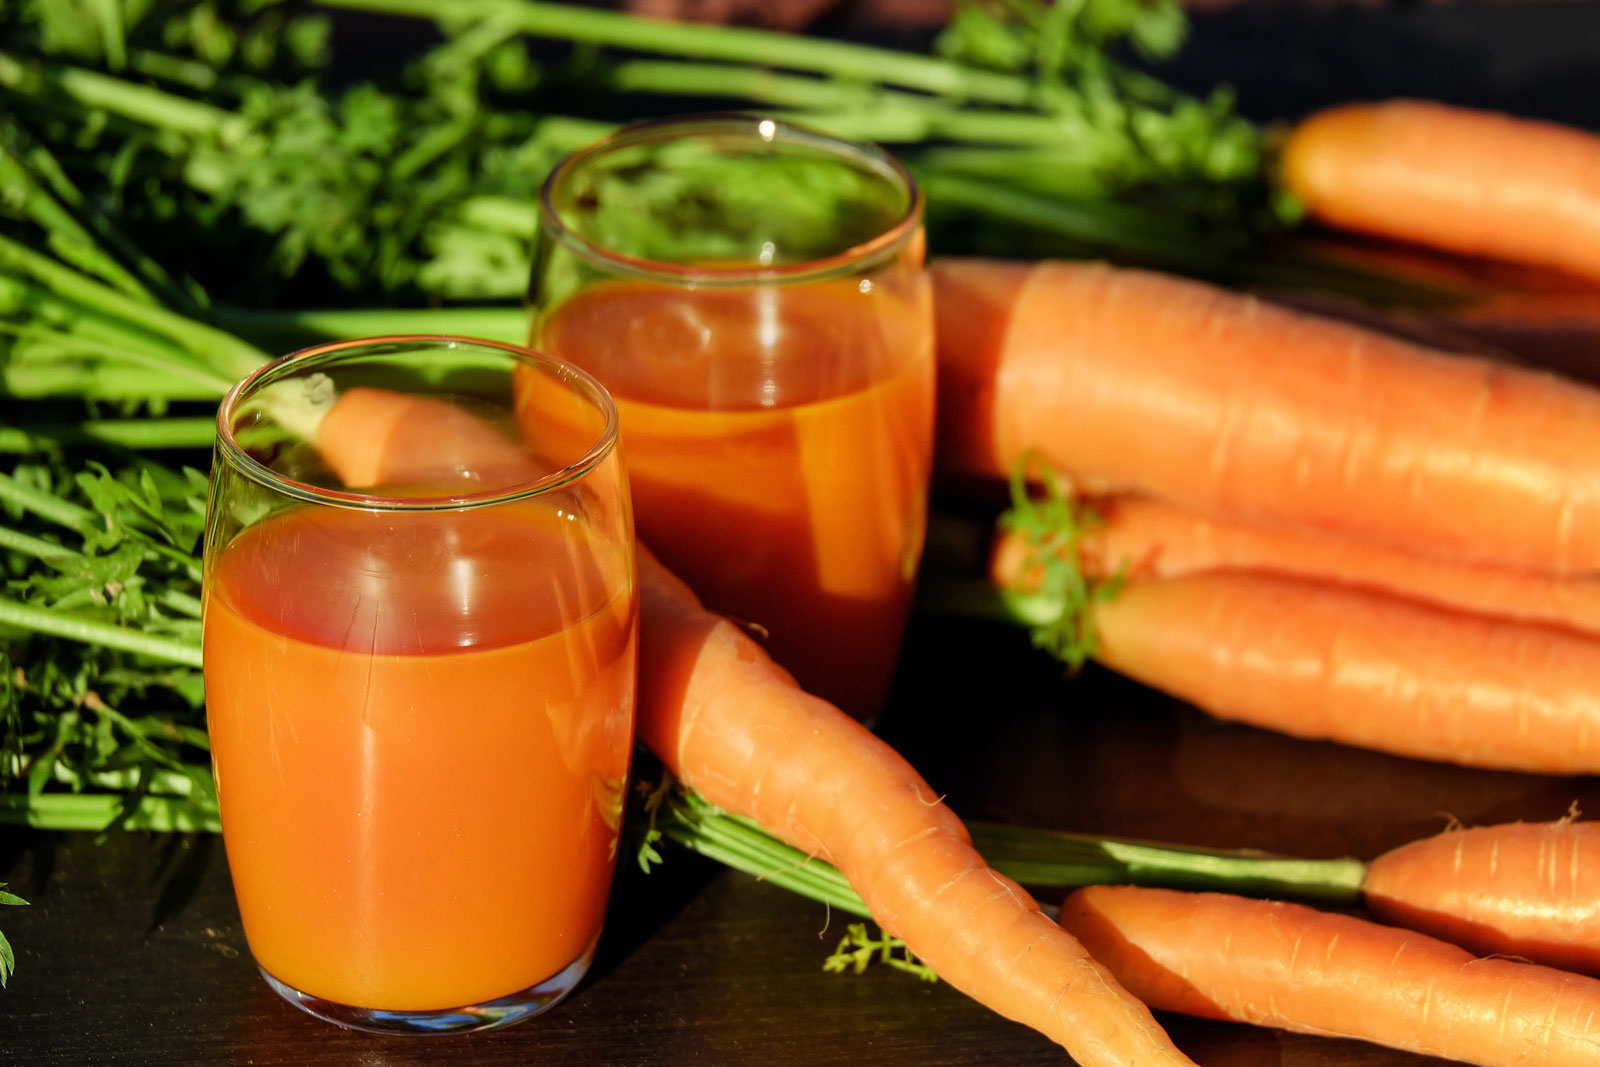 Carrots | The Best Fruits and Vegetables for Juicing With 3 Ingredients